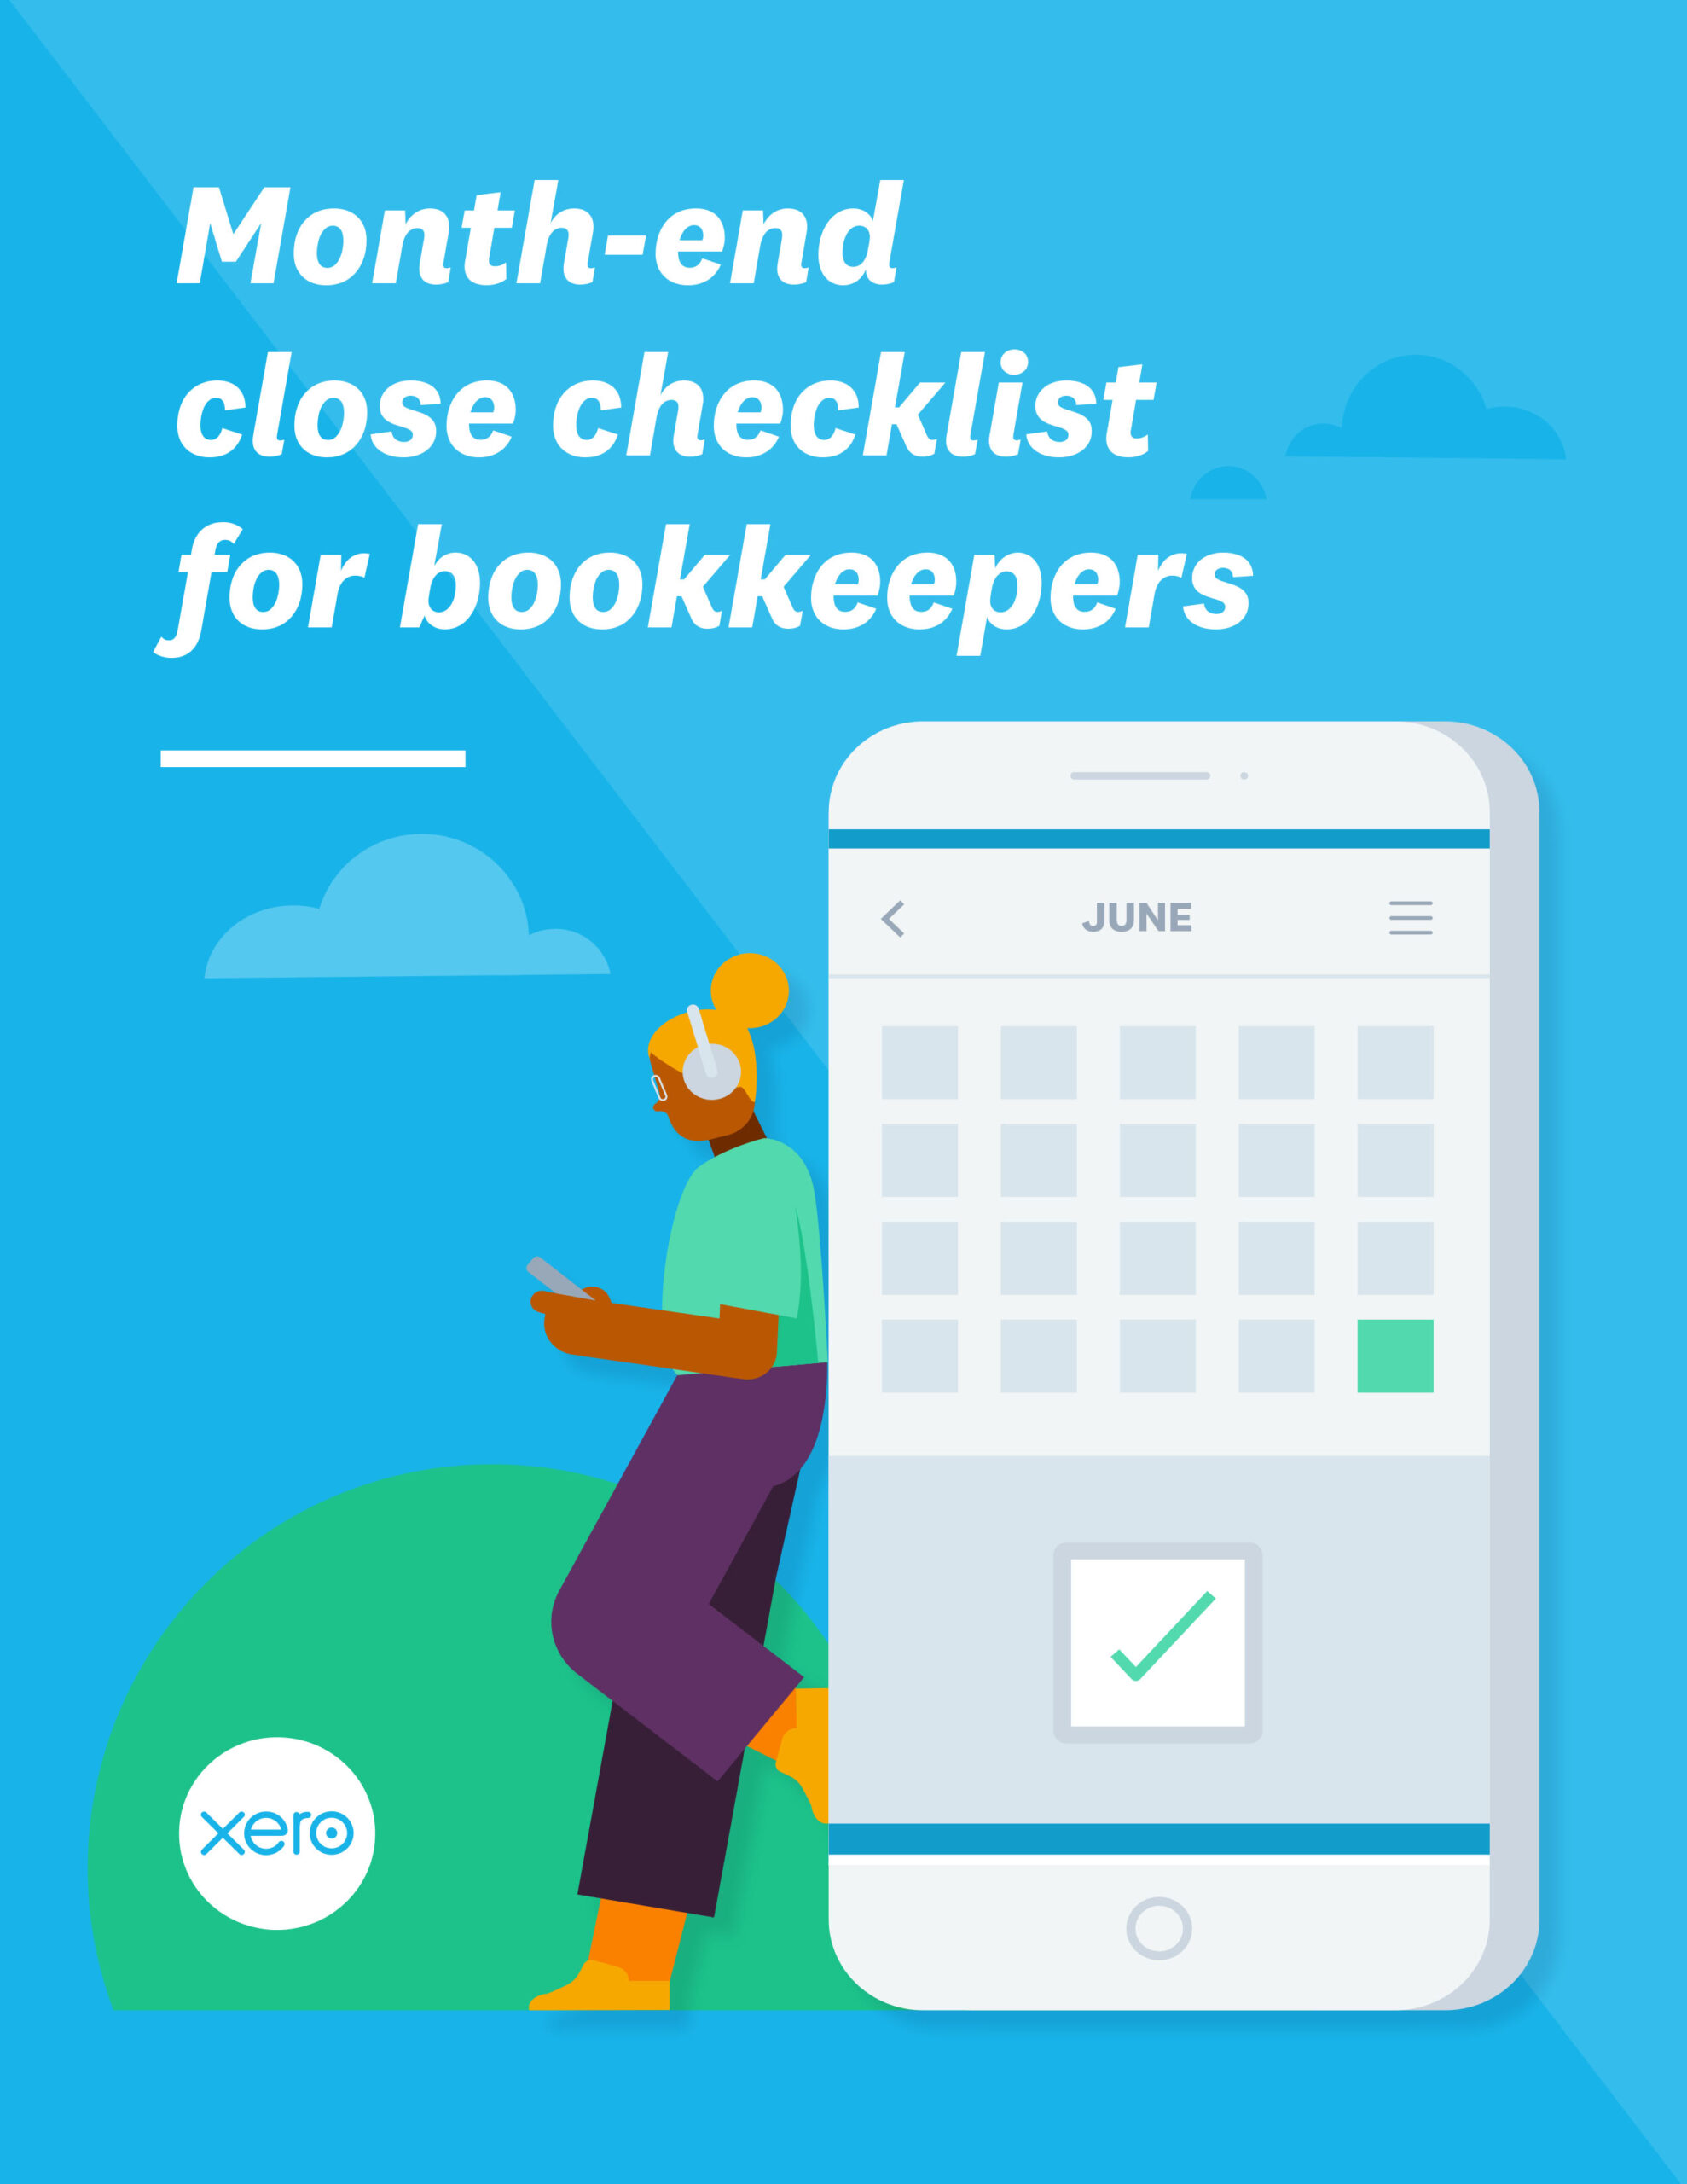 Month-end checklist for bookkeepers